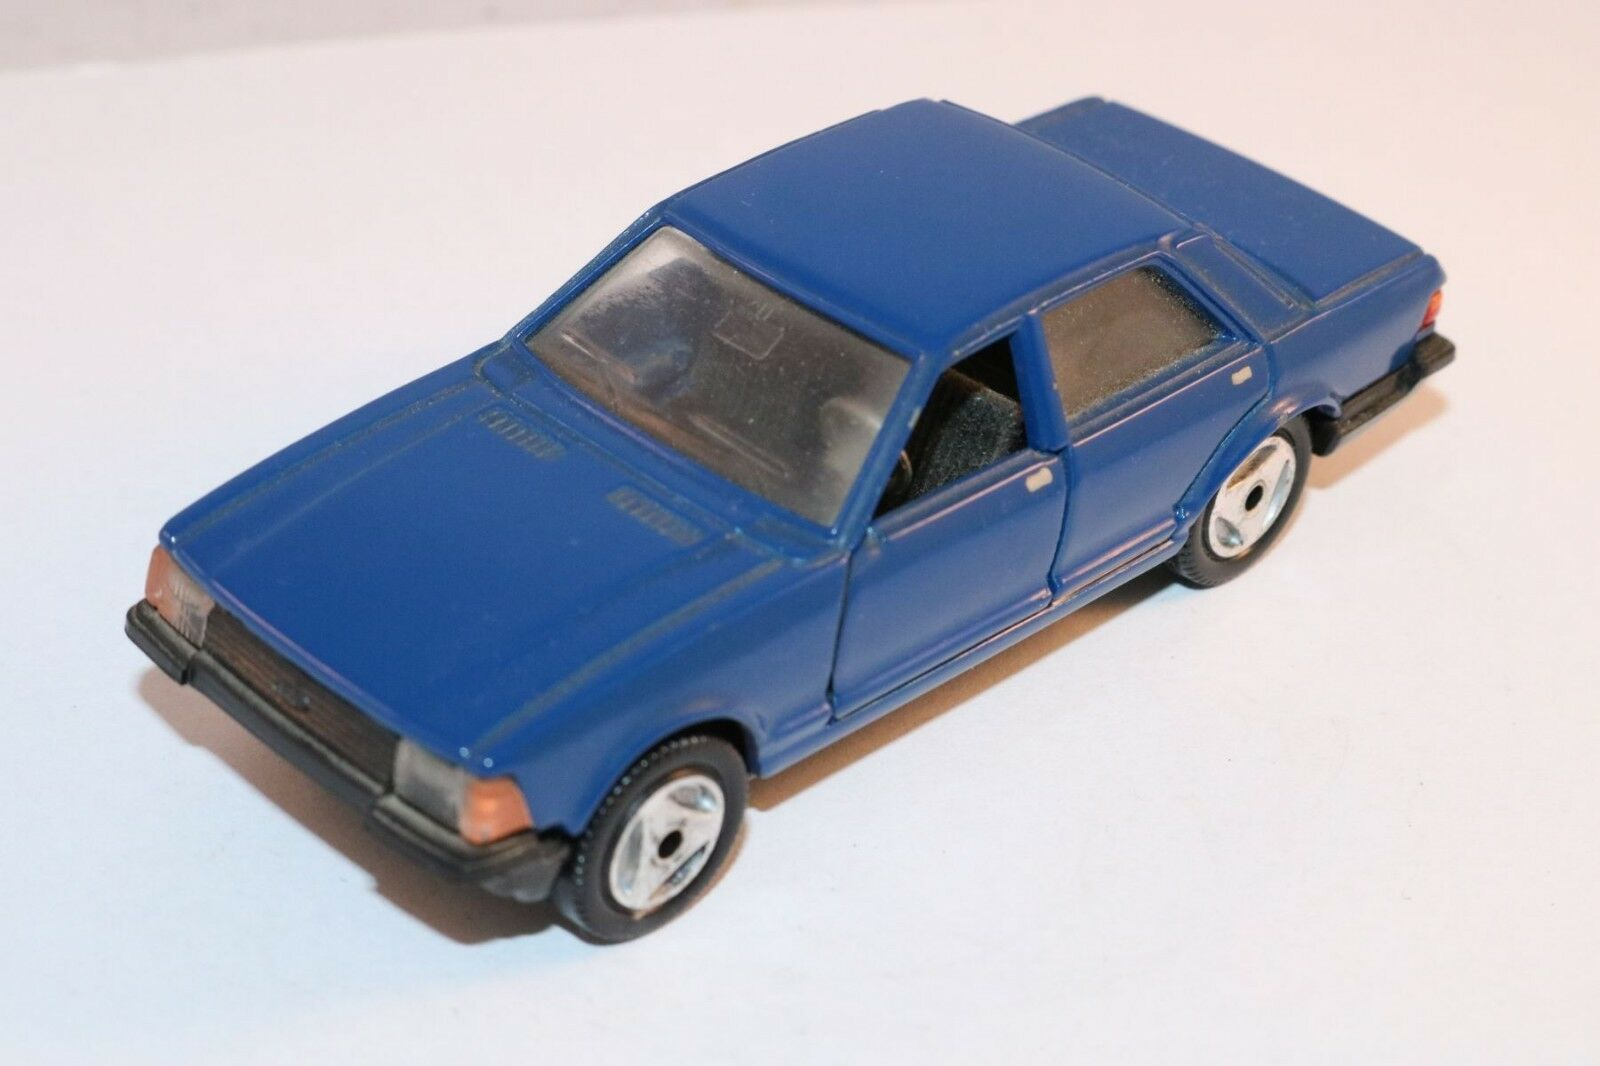 Hot wheels Hotwheels A121 Ford Granada rare dark bluee version very near mint